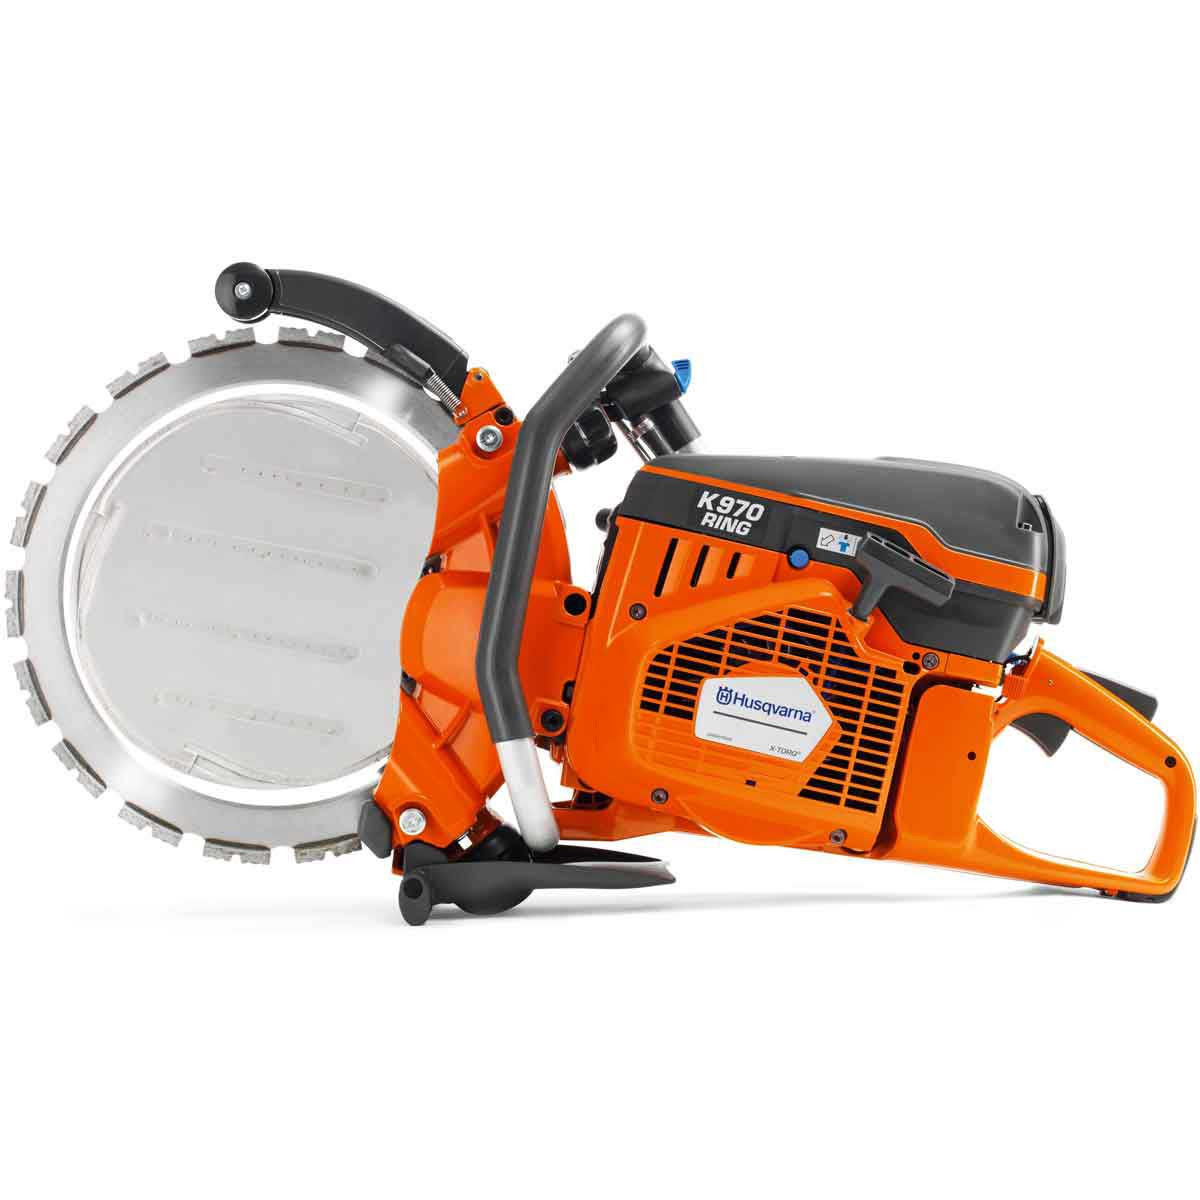 Husqvarna K970 Concrete Ring Saw